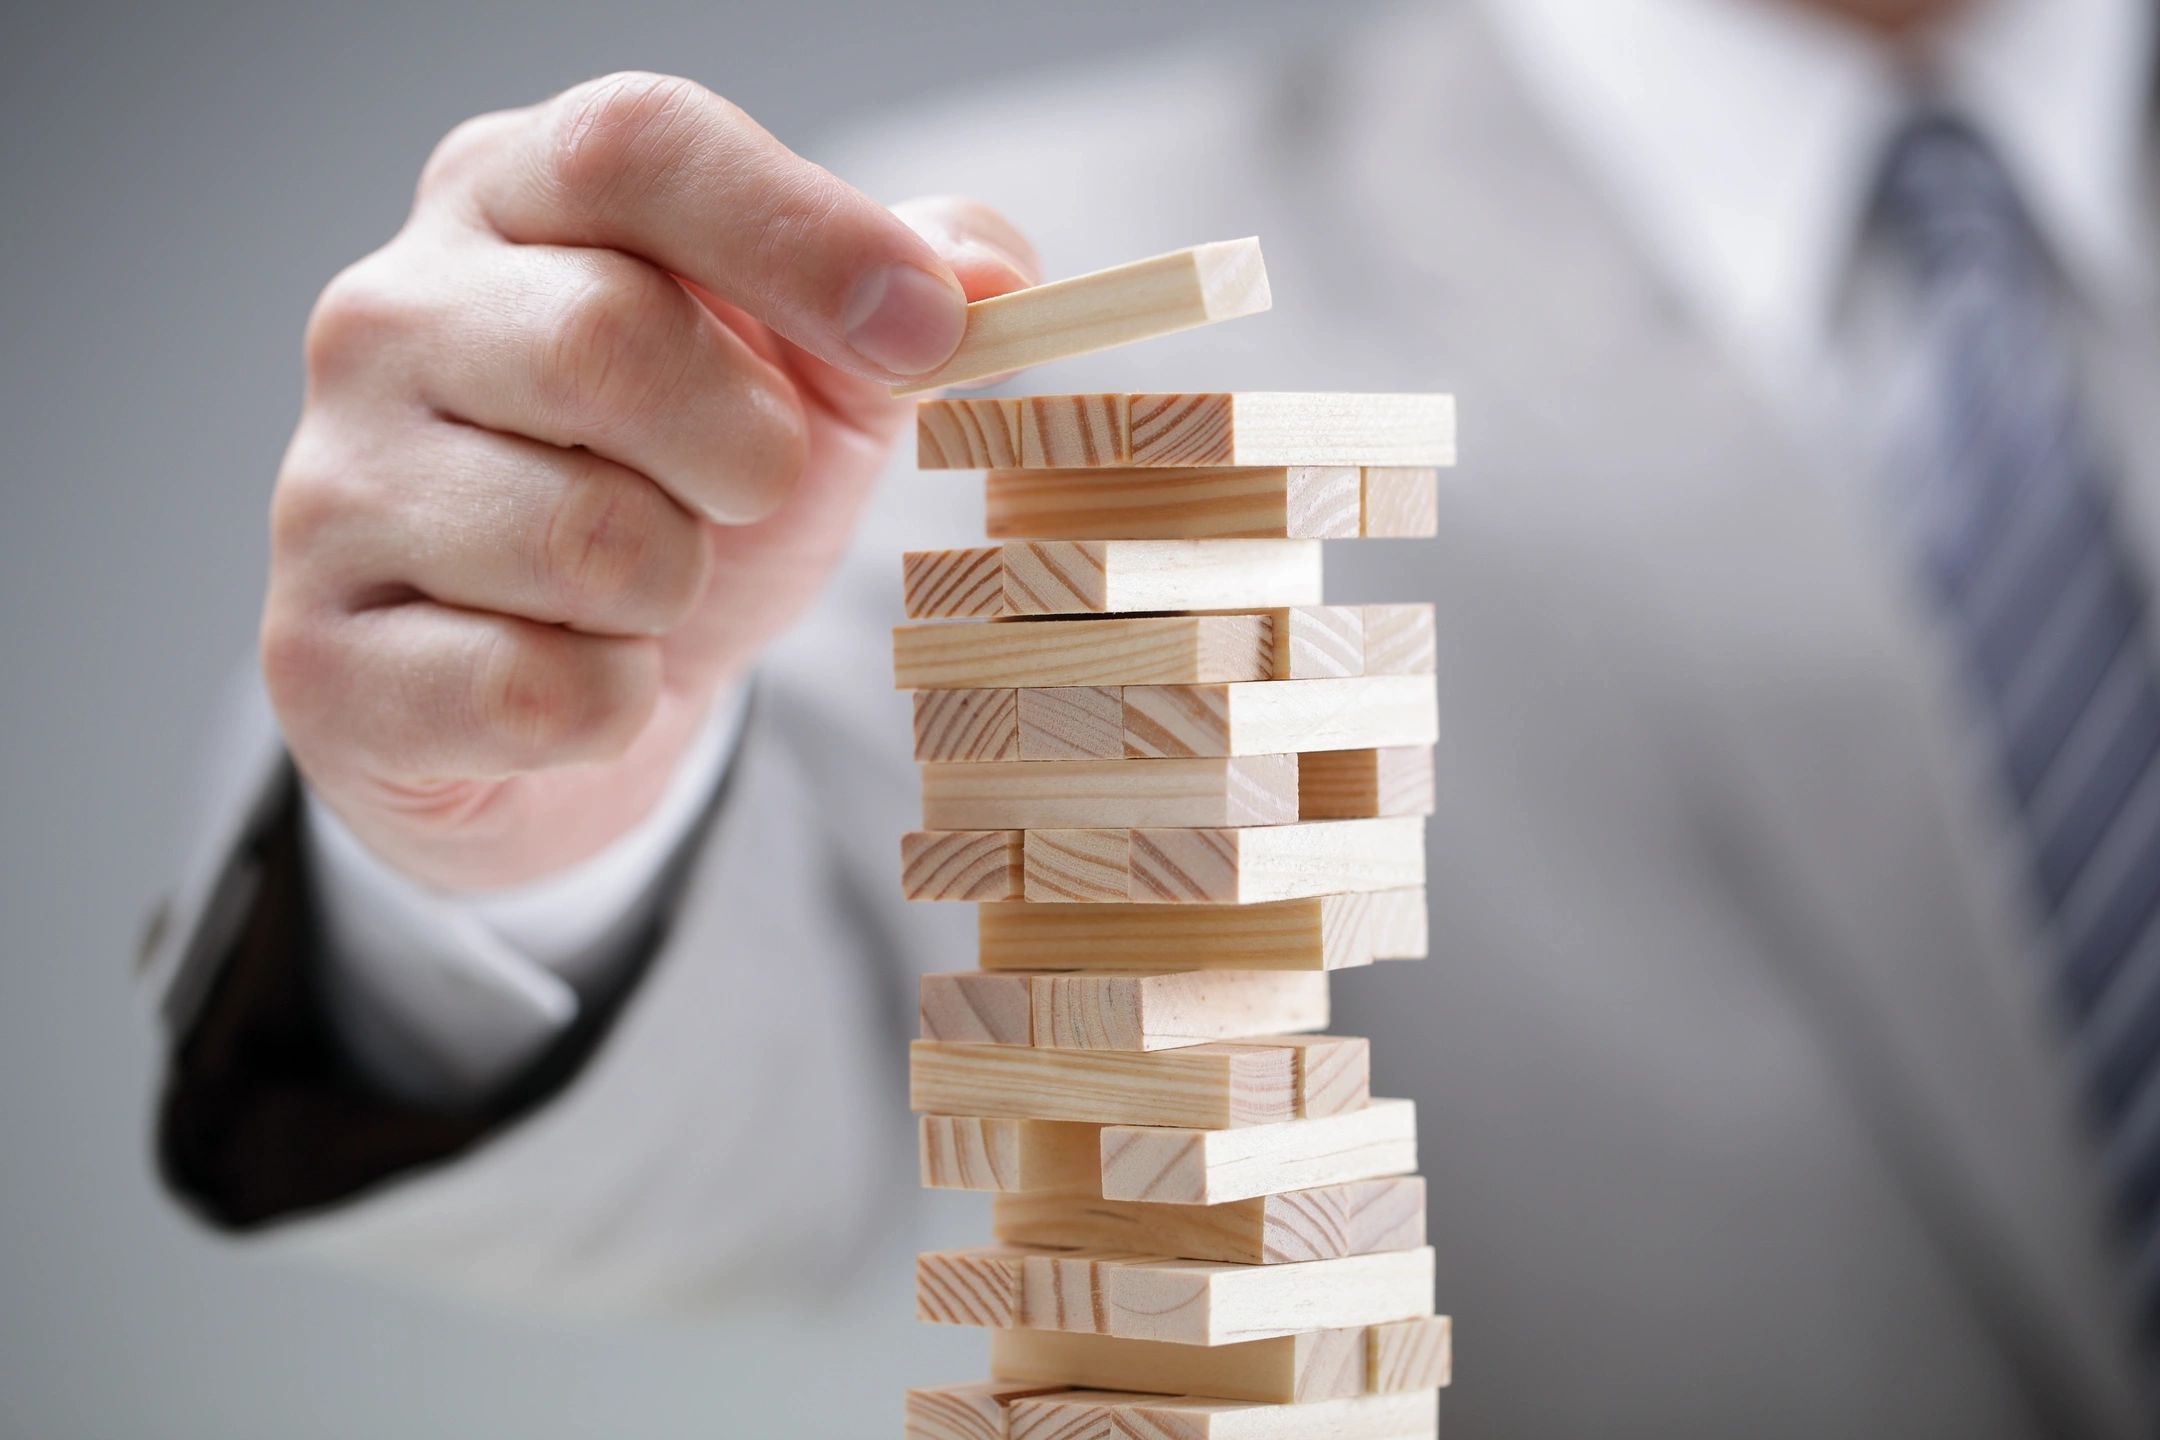 6 Ways To Overcome Business Challenges